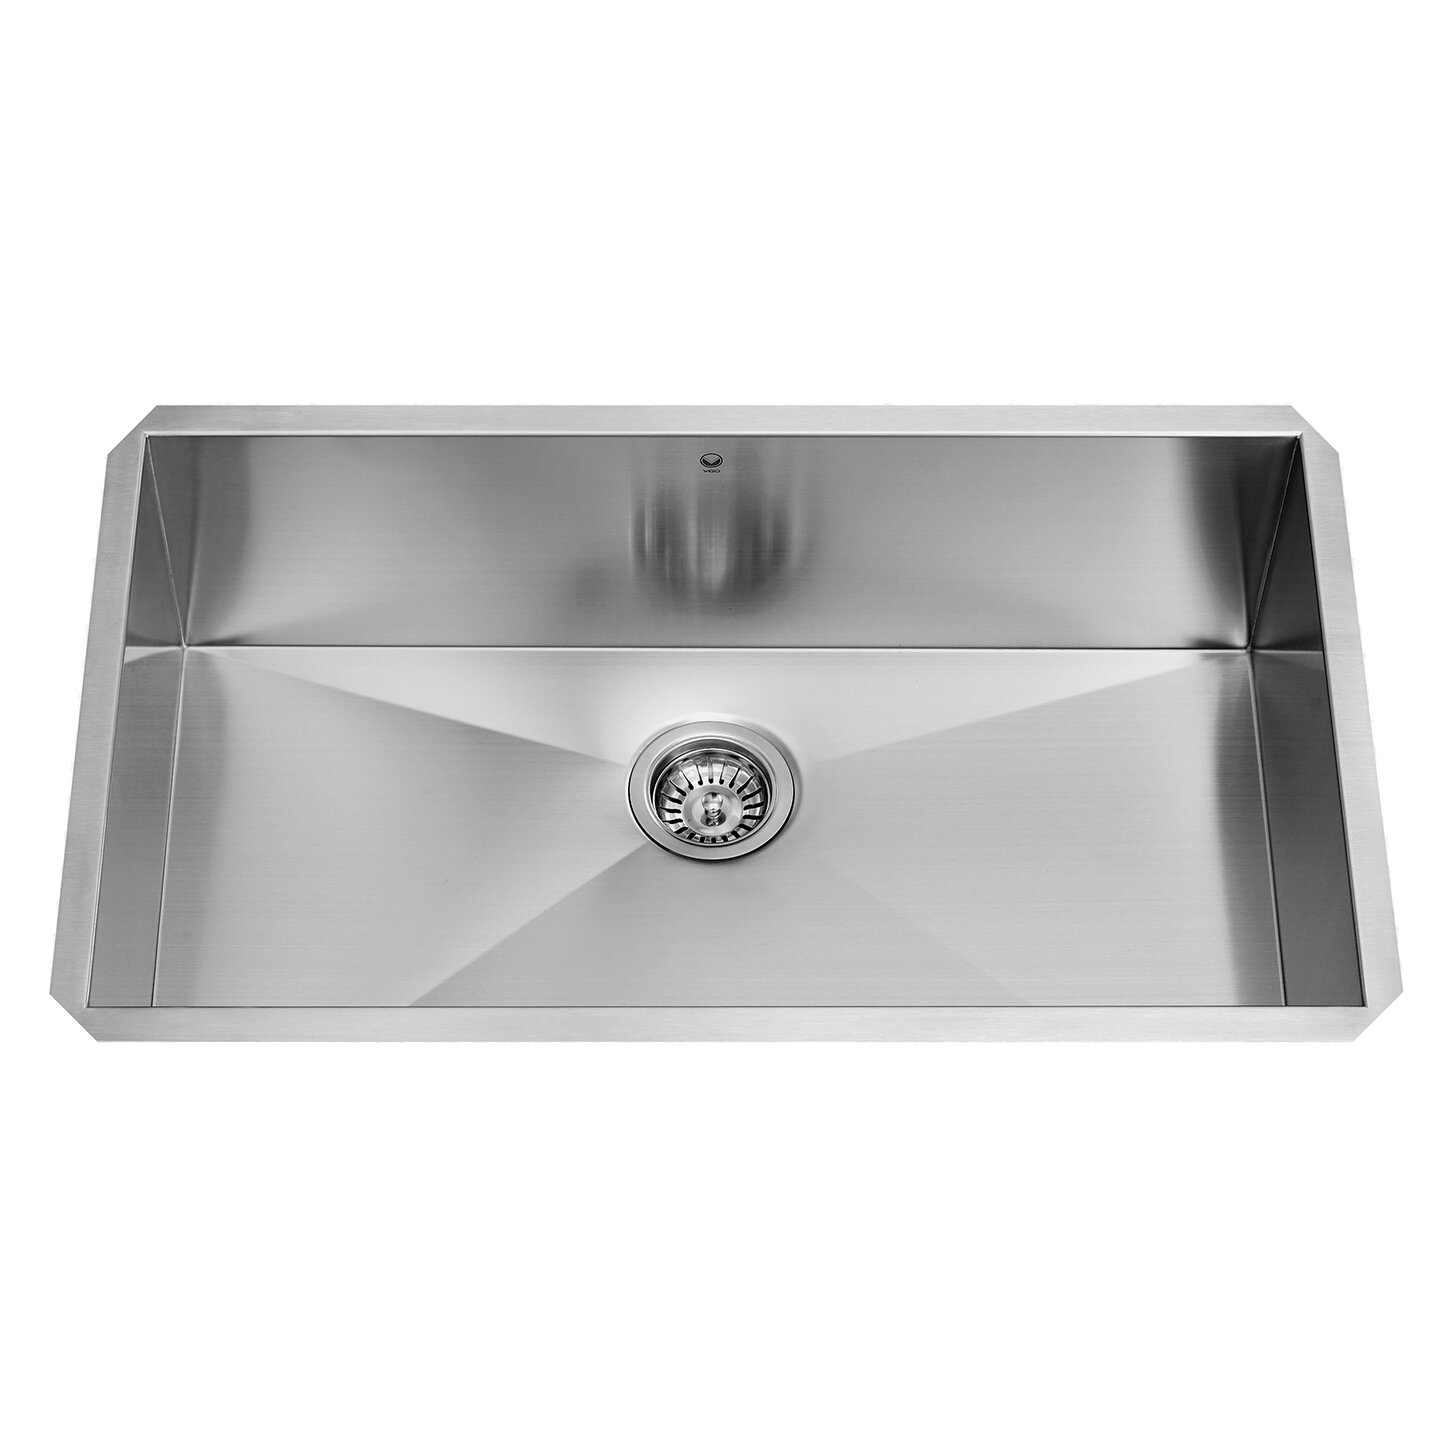 ... Single Bowl 16 Gauge Stainless Steel Kitchen Sink & Reviews Wayfair